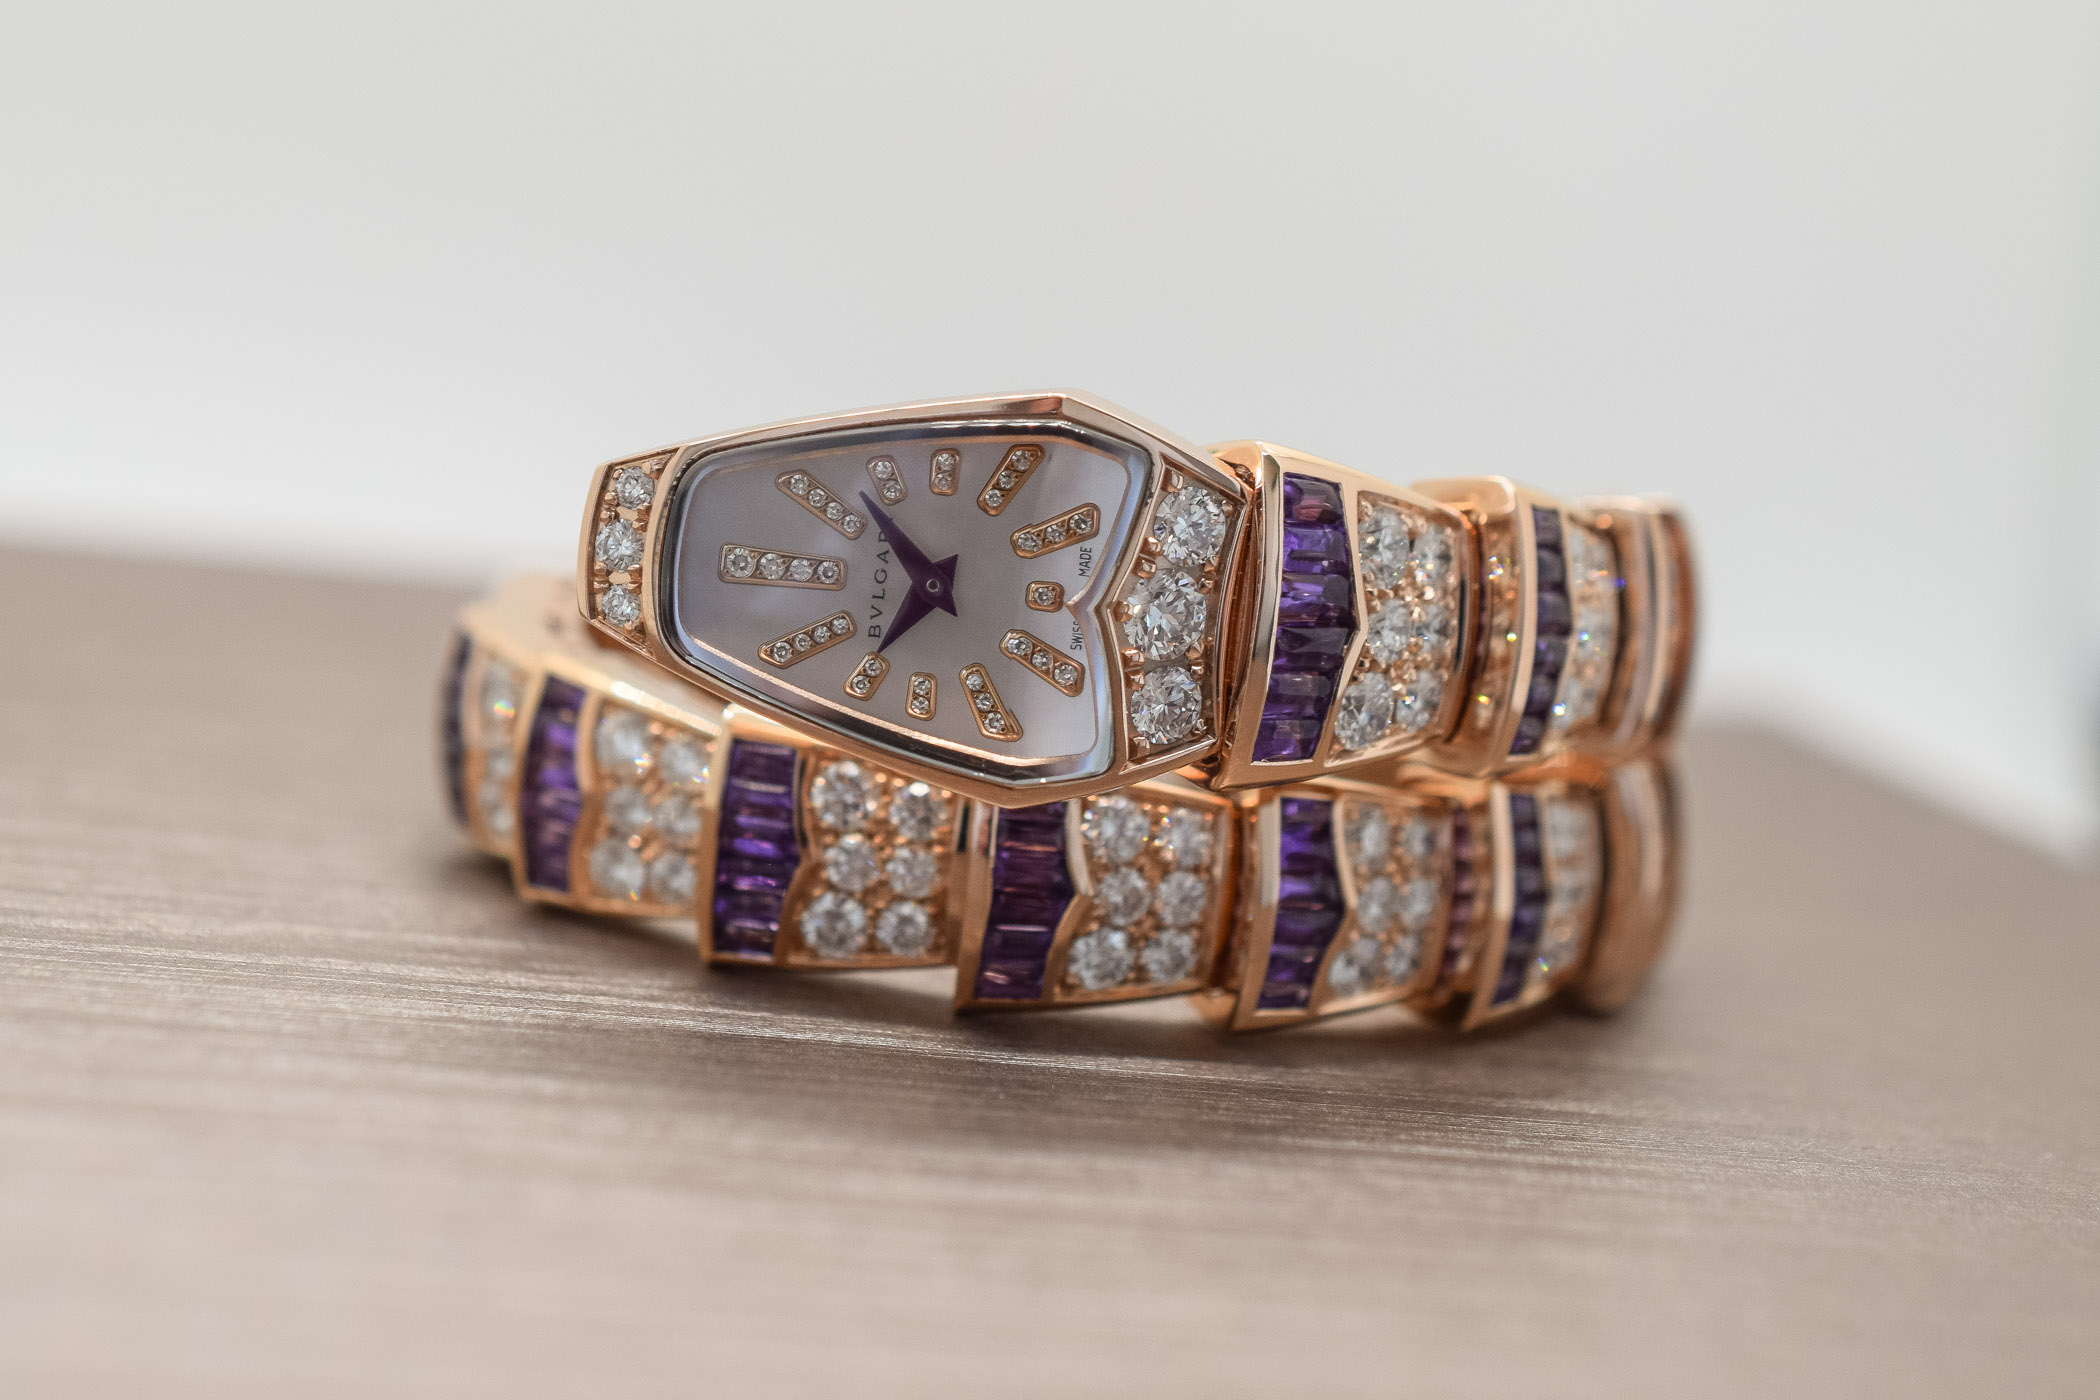 Bvlgari Amethyst capsule collection Serpenti Scaglie